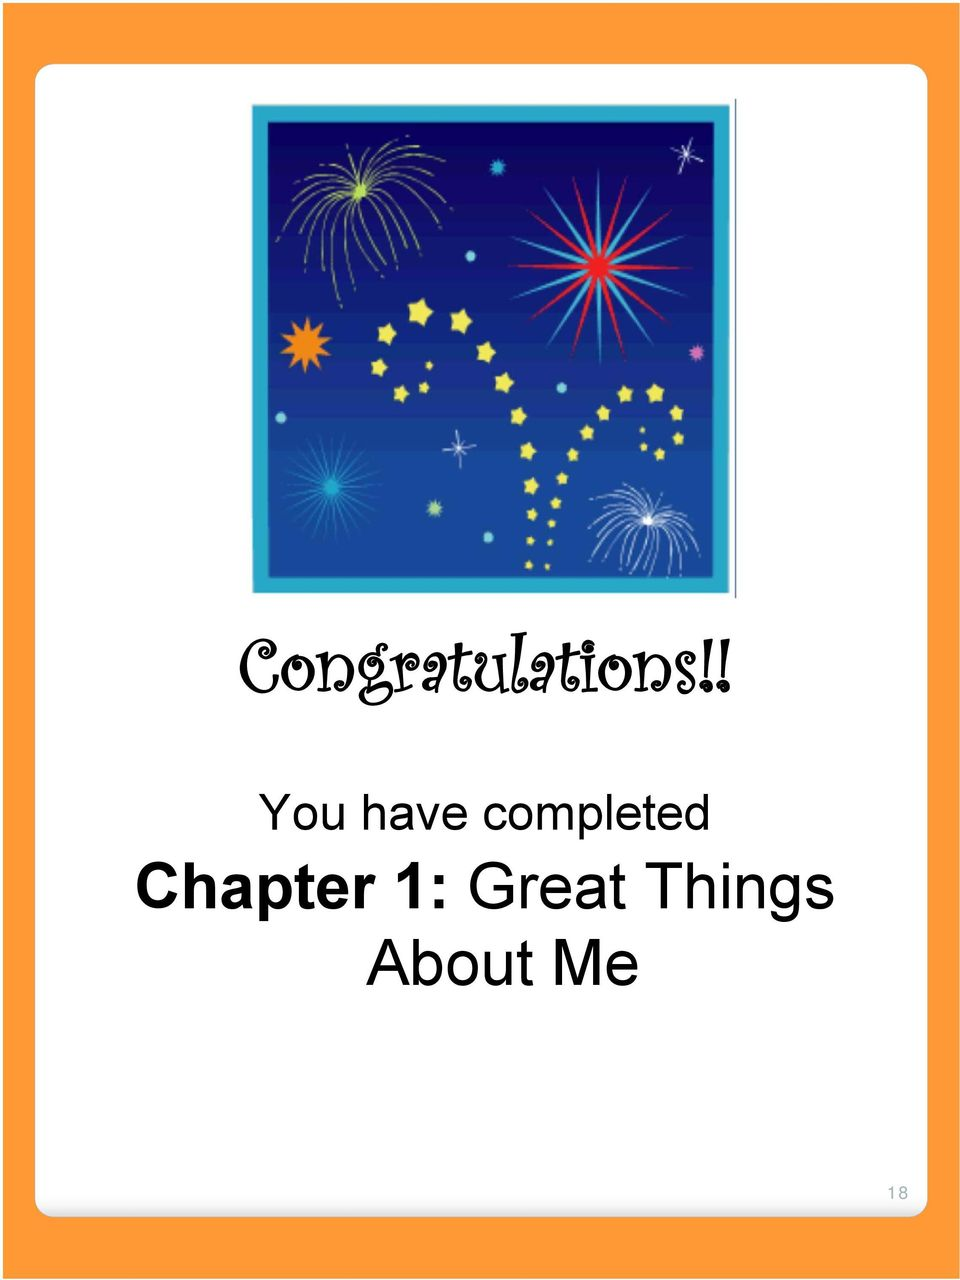 completed Chapter